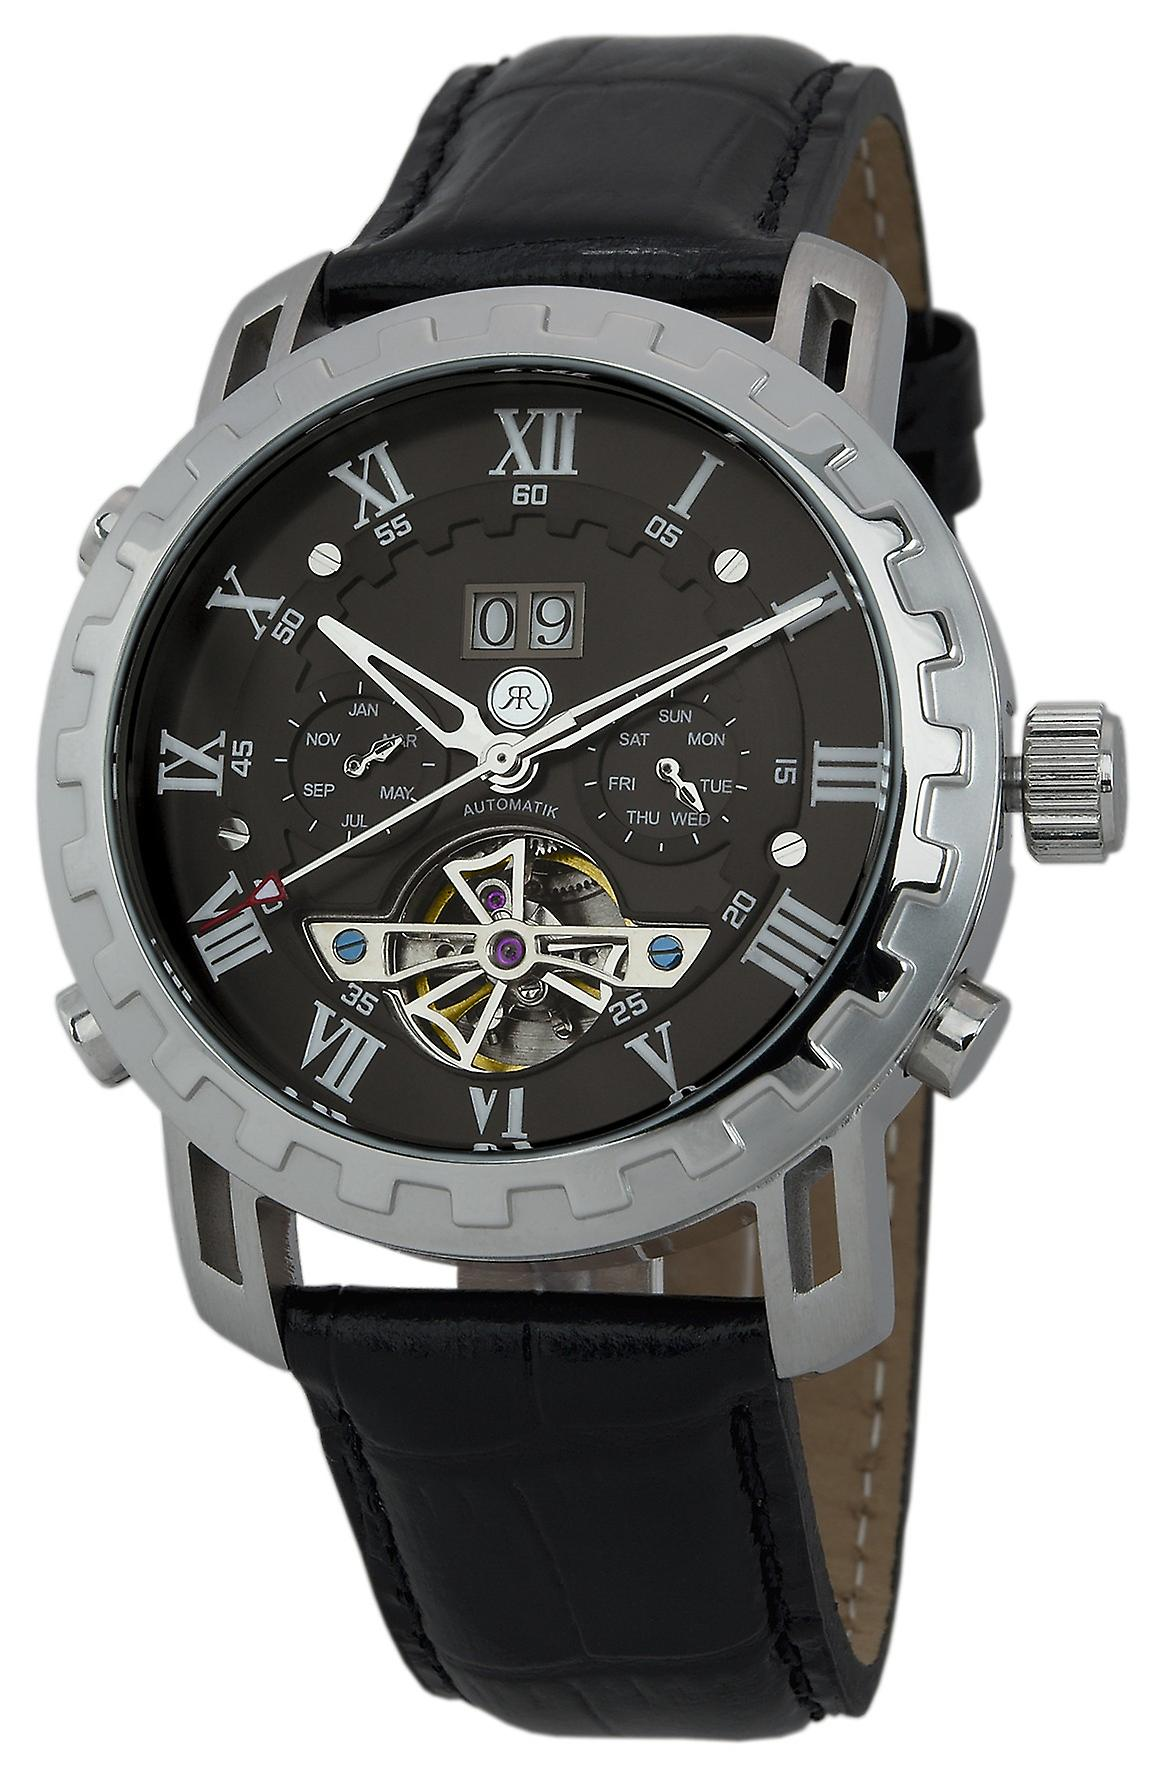 Reichenbach Gents automatic watch Mewes, RB304-122